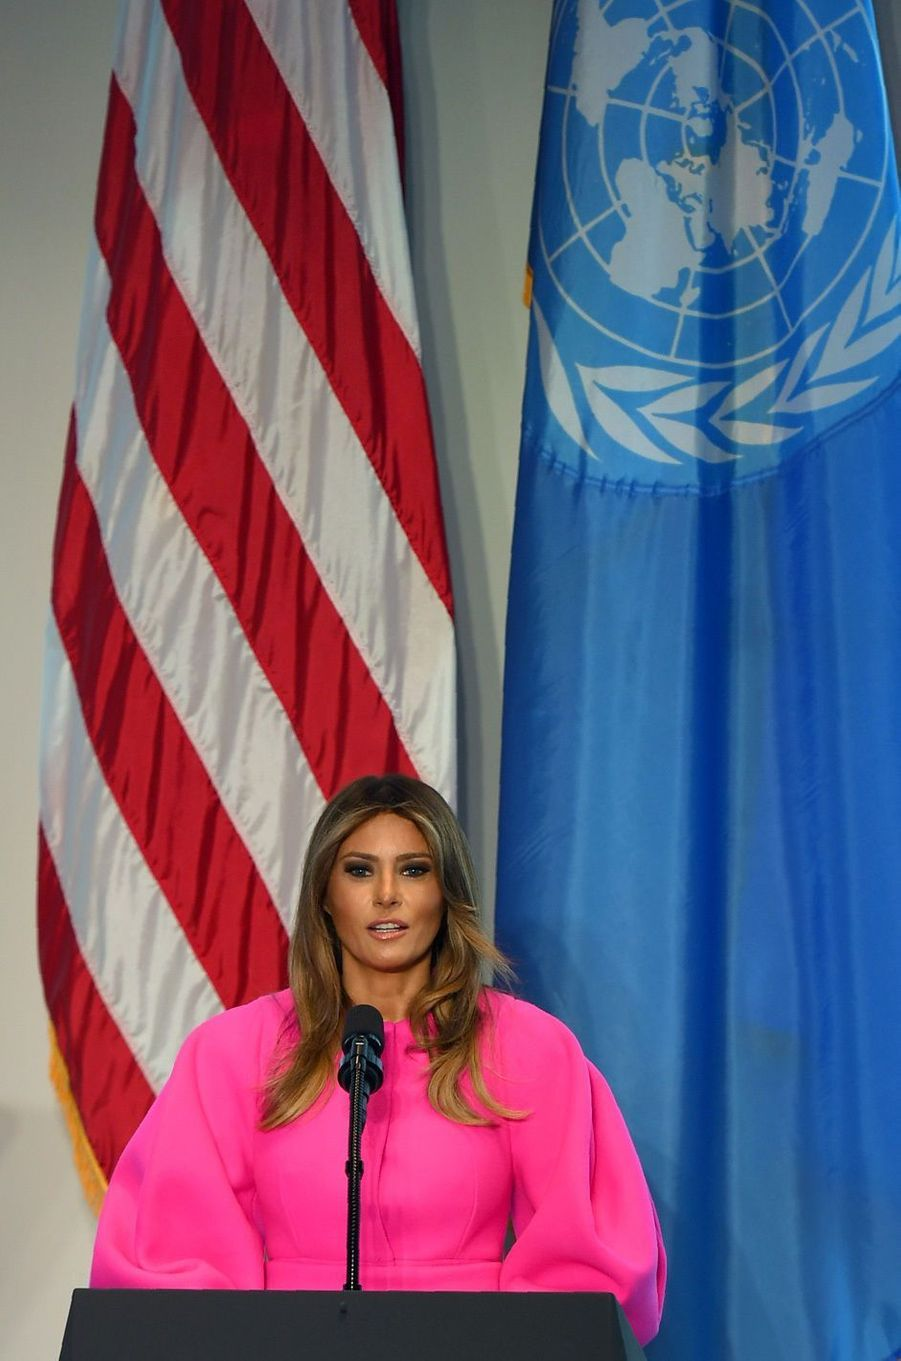 Melania Trump au siège des Nations unies, le 20 septembre 2017.